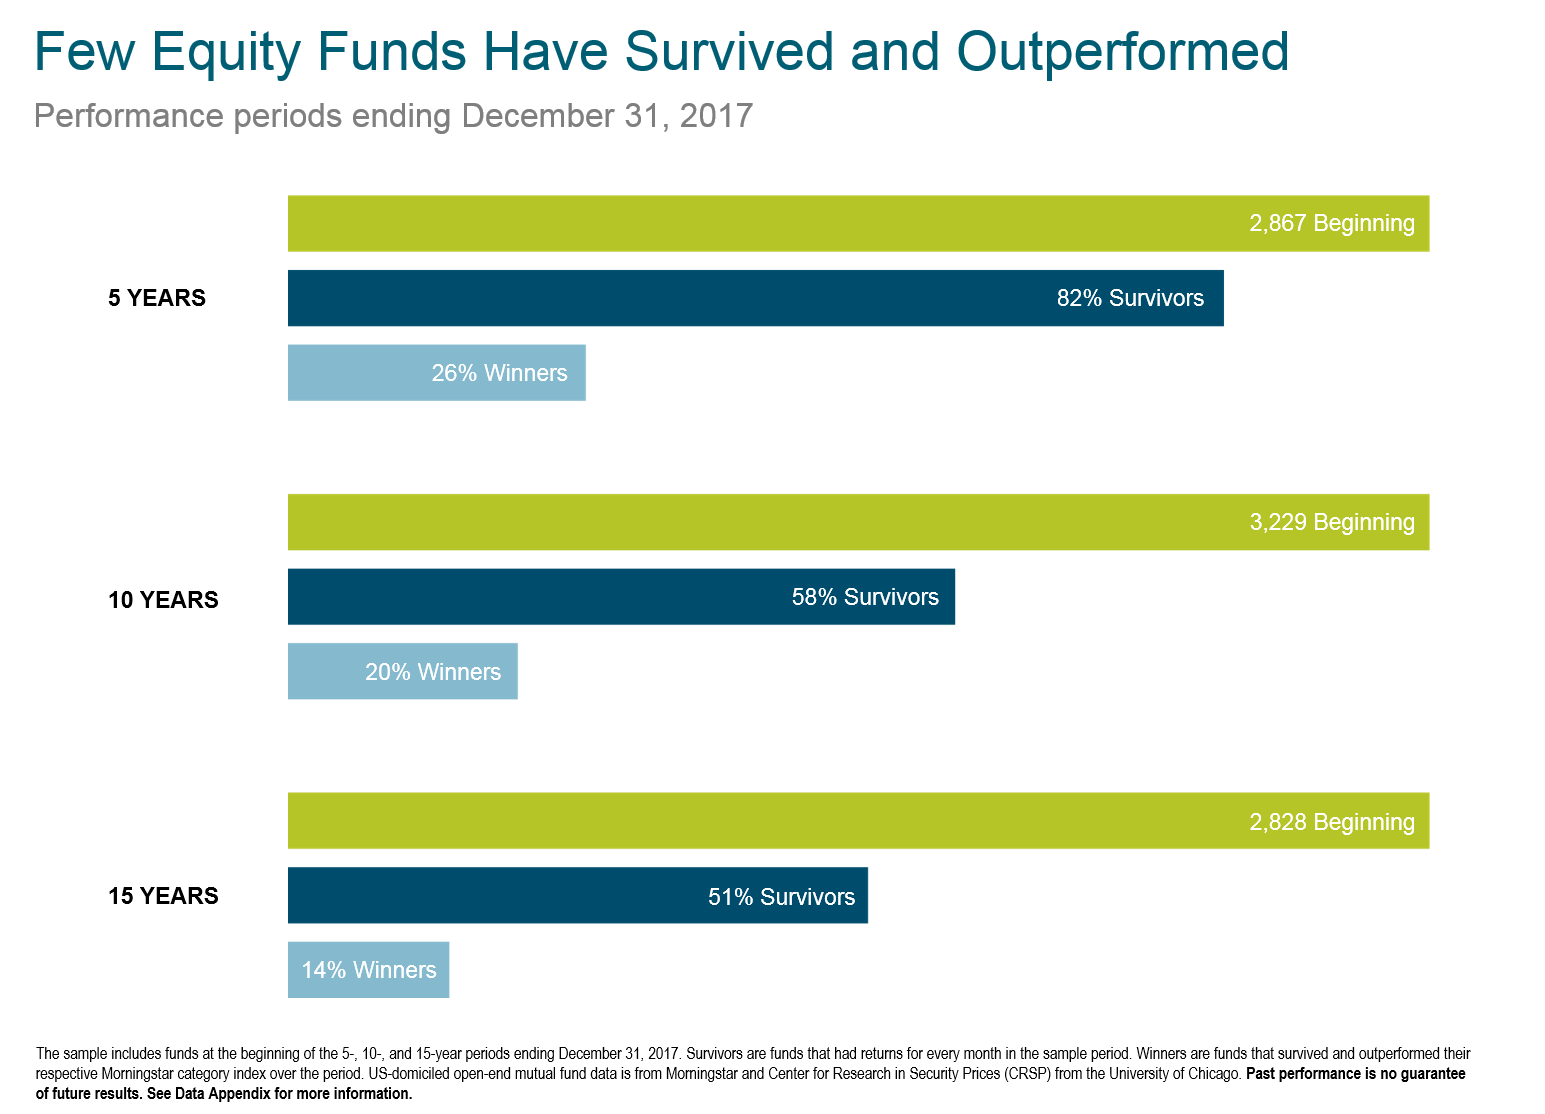 Exhibit 1.  The number of mutual funds that survive and beat their benchmarks are significantly less than random chance would suggest.